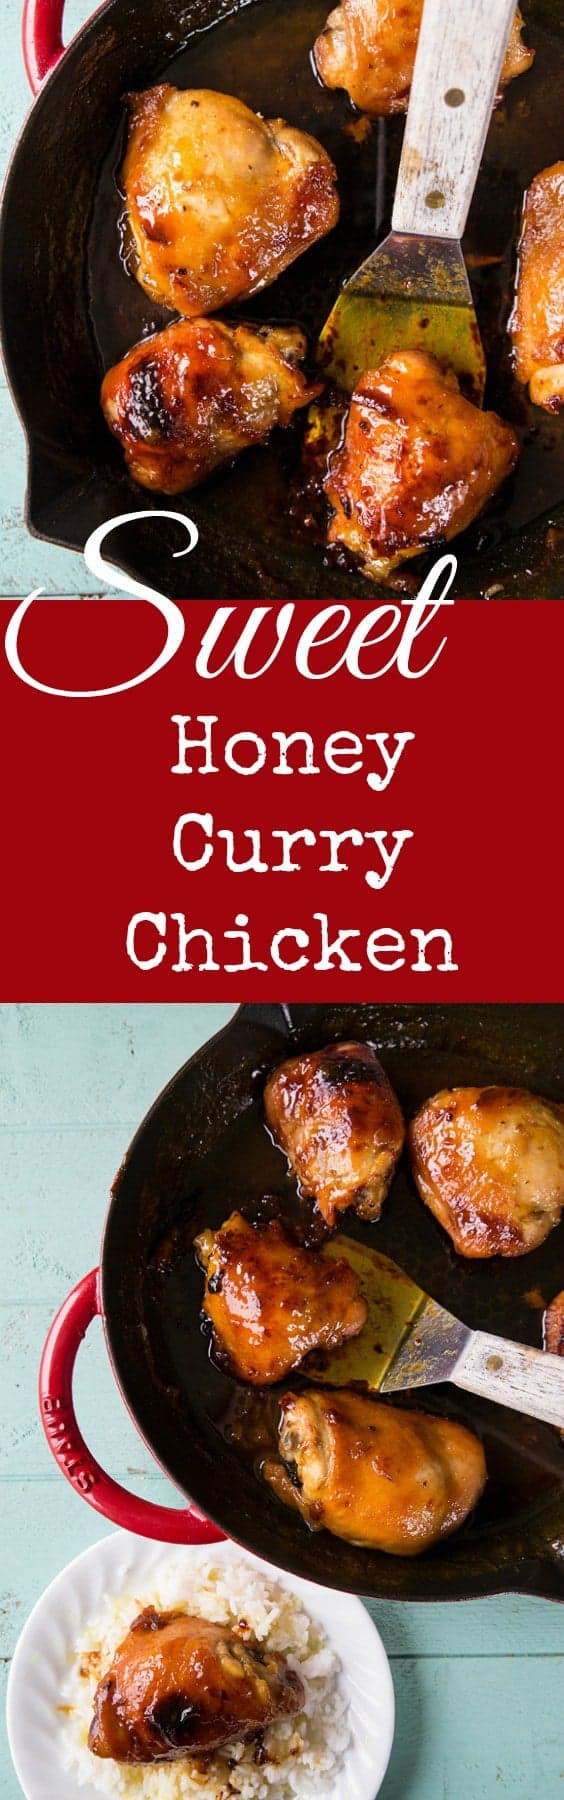 Sweet Honey Curry Chicken, made in a skillet or a baking dish. One of our favourite supper recipes!